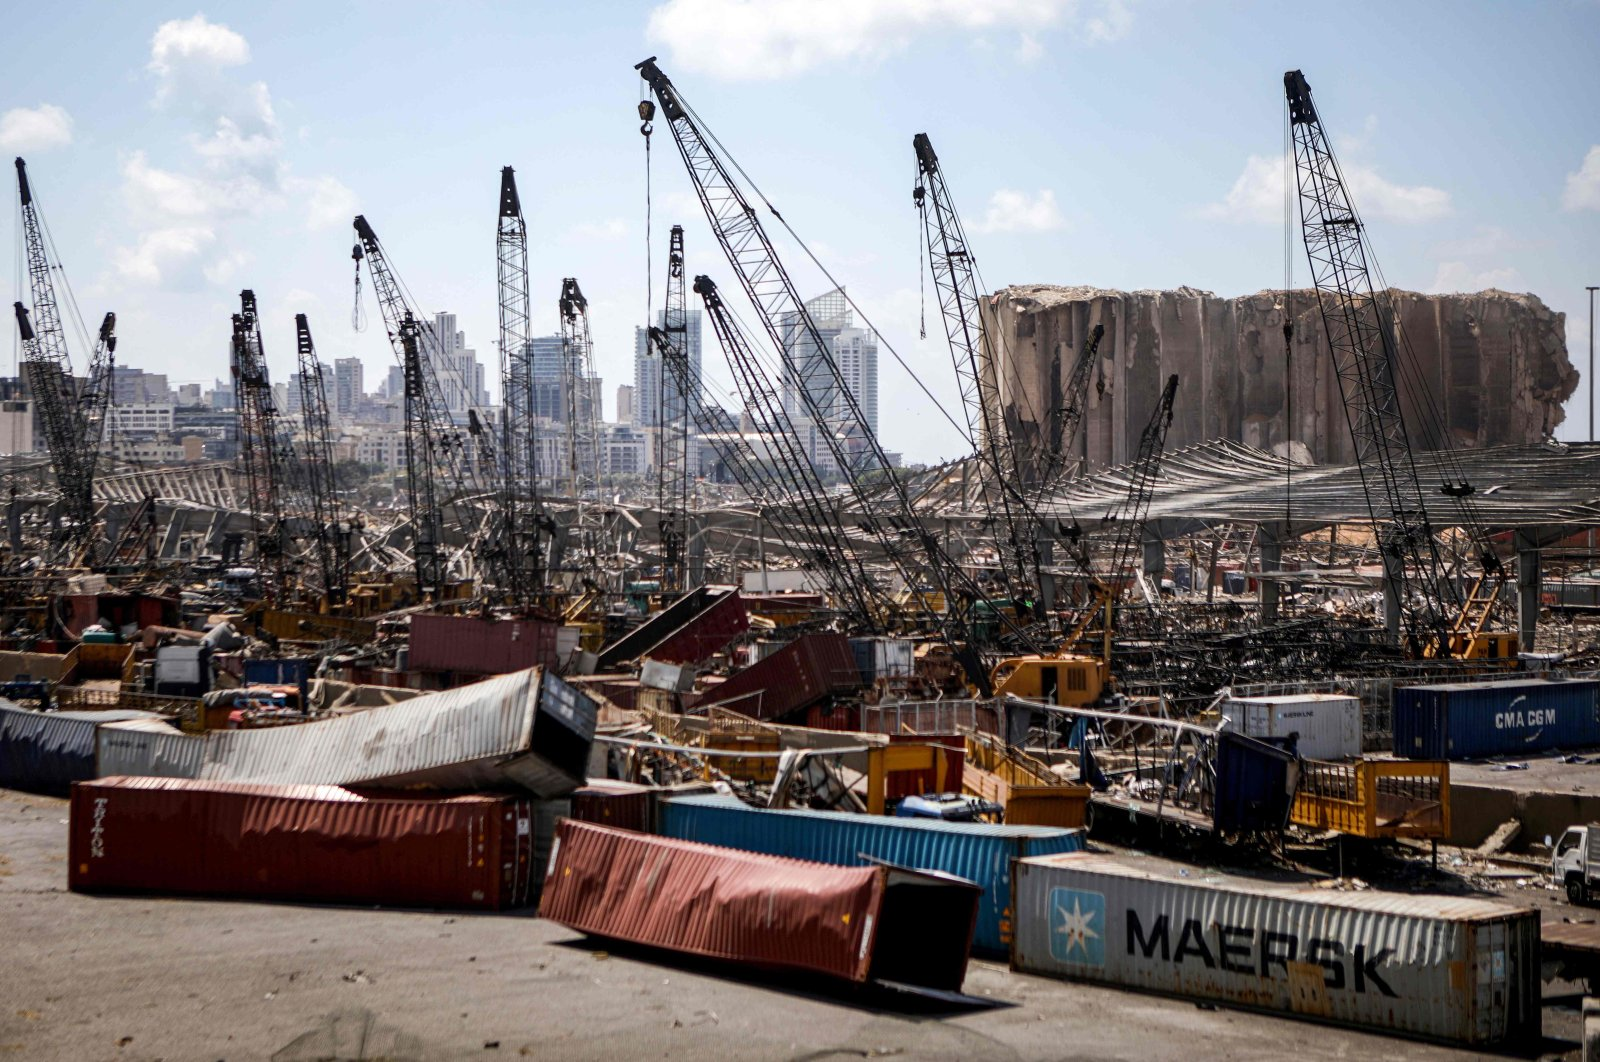 Destroyed freight containers sit under cranes against the backdrop of grain silos damaged in an explosion last week at the Port of Beirut in Lebanon's capital, Aug. 9, 2020. (AFP Photo)